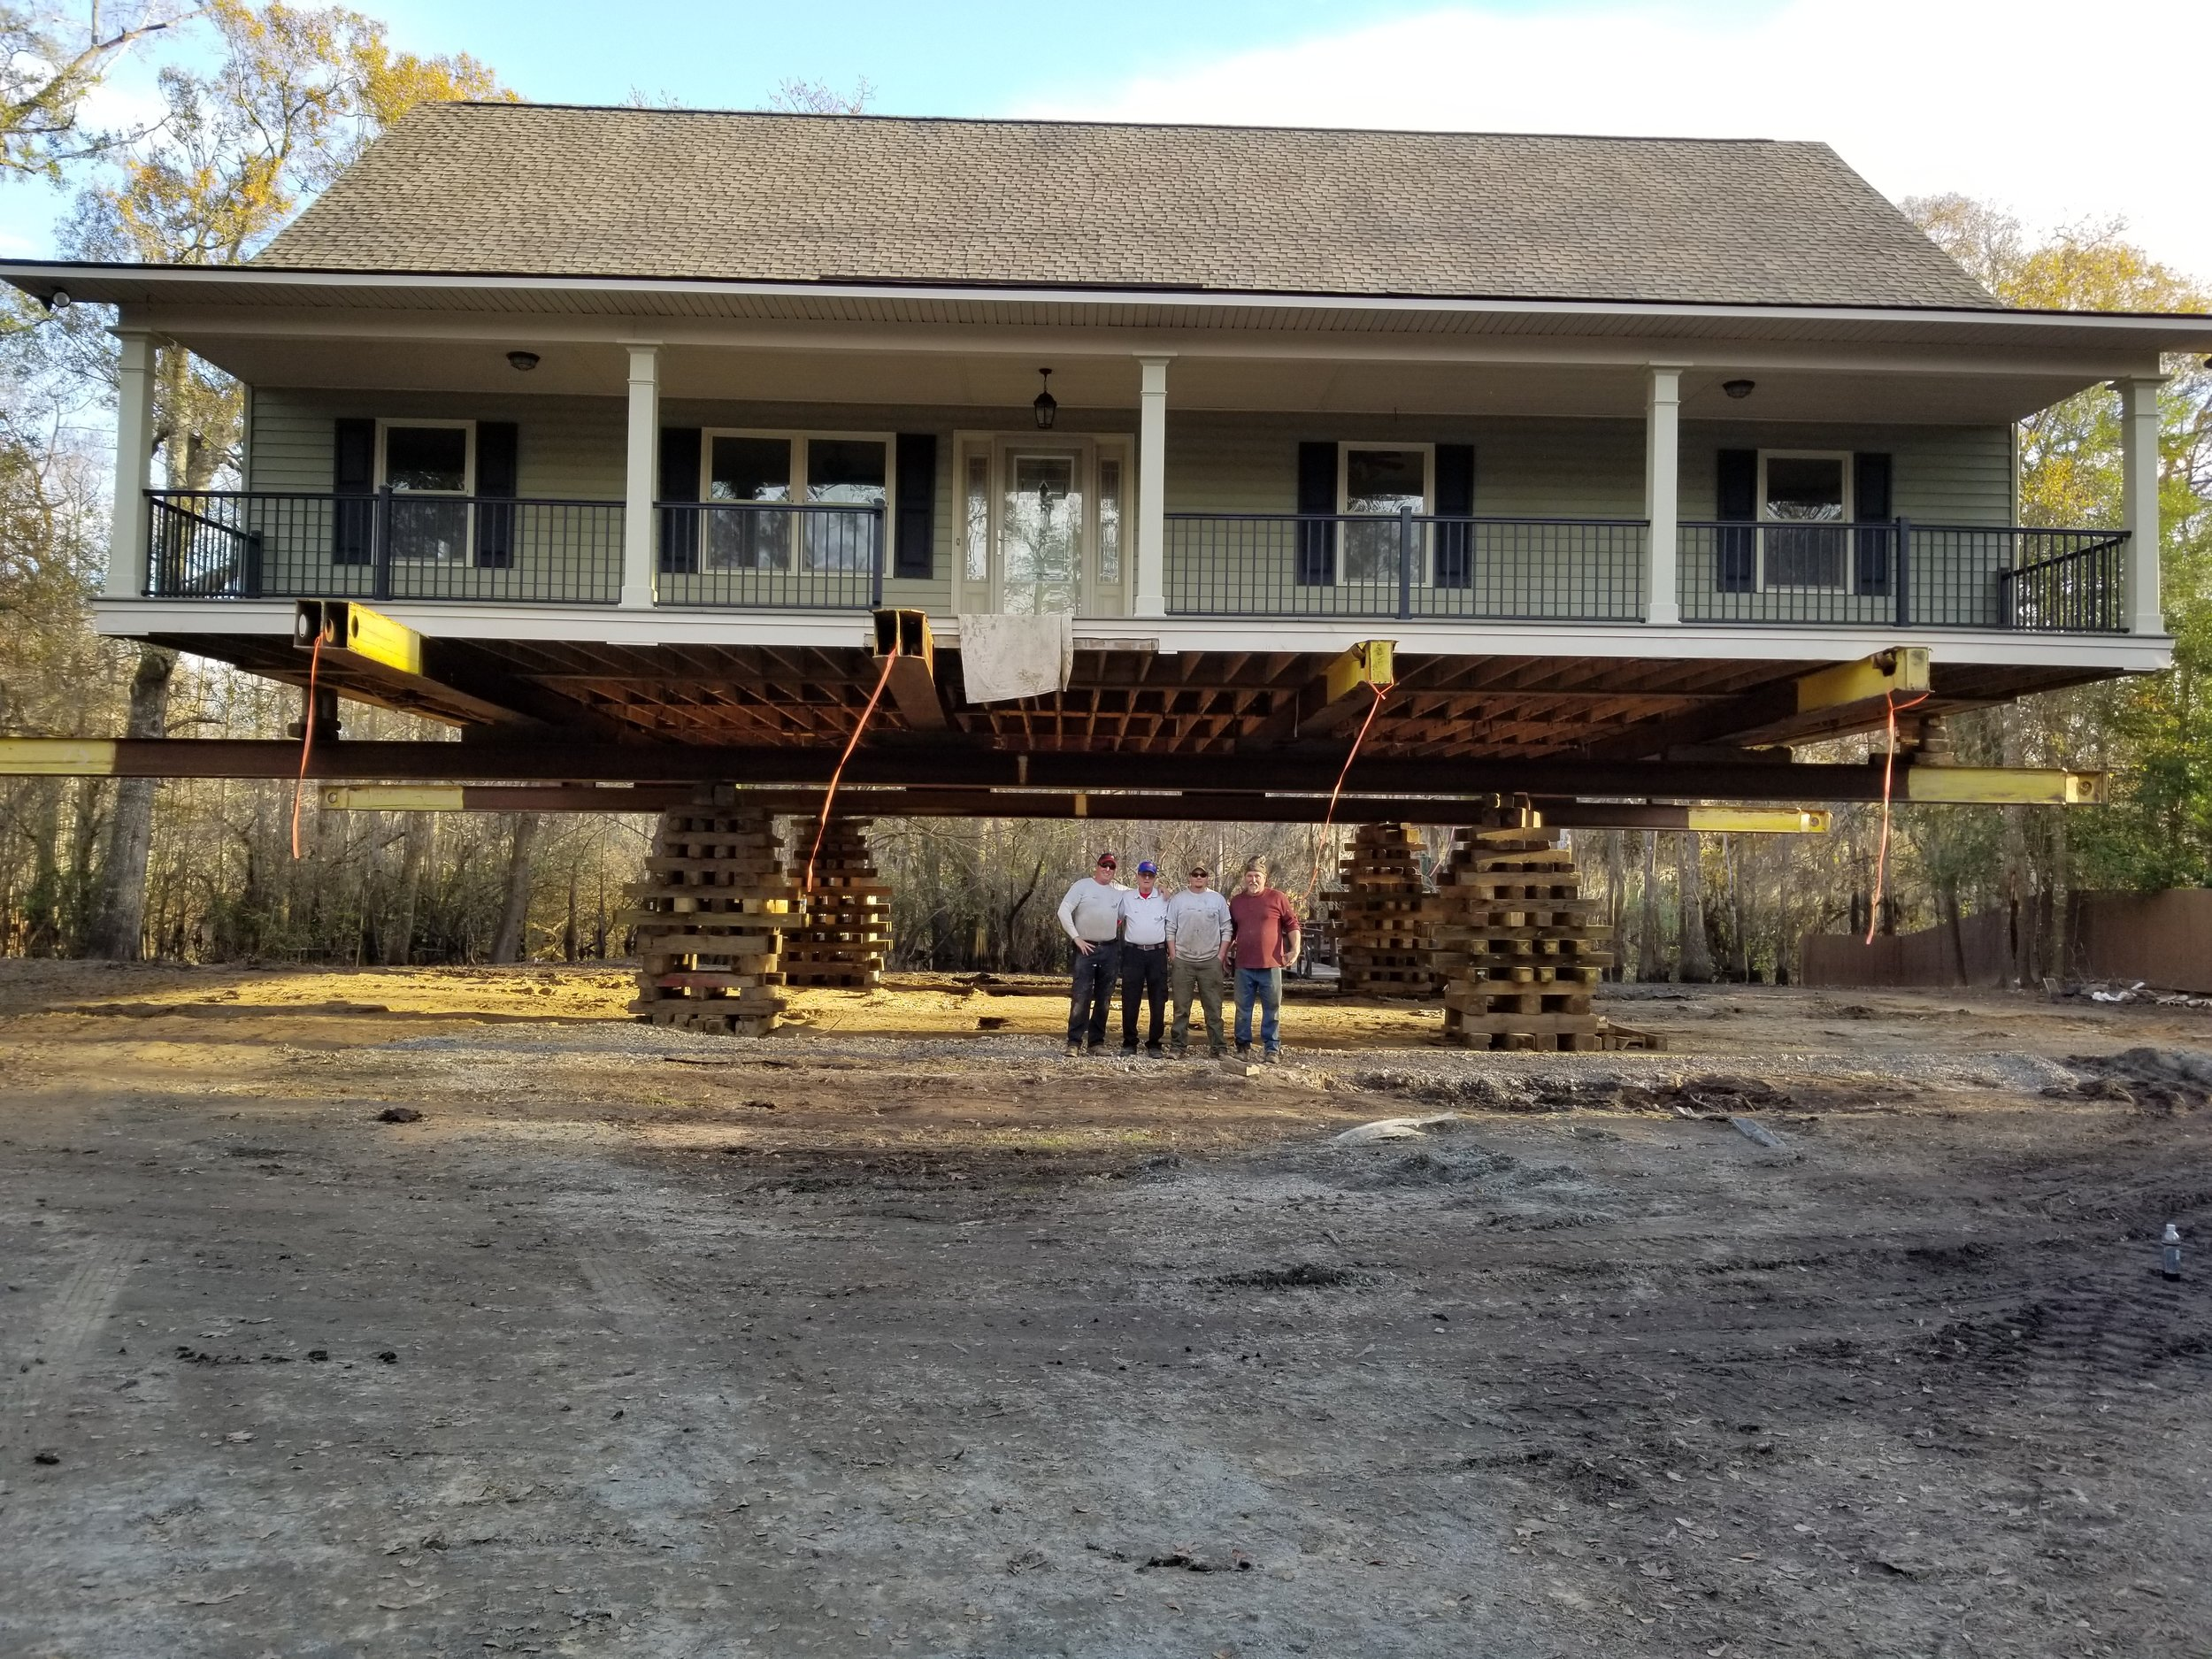 This Mullins, SC home was moved over 20 feet and raised 12 feet to avoid future flooding.